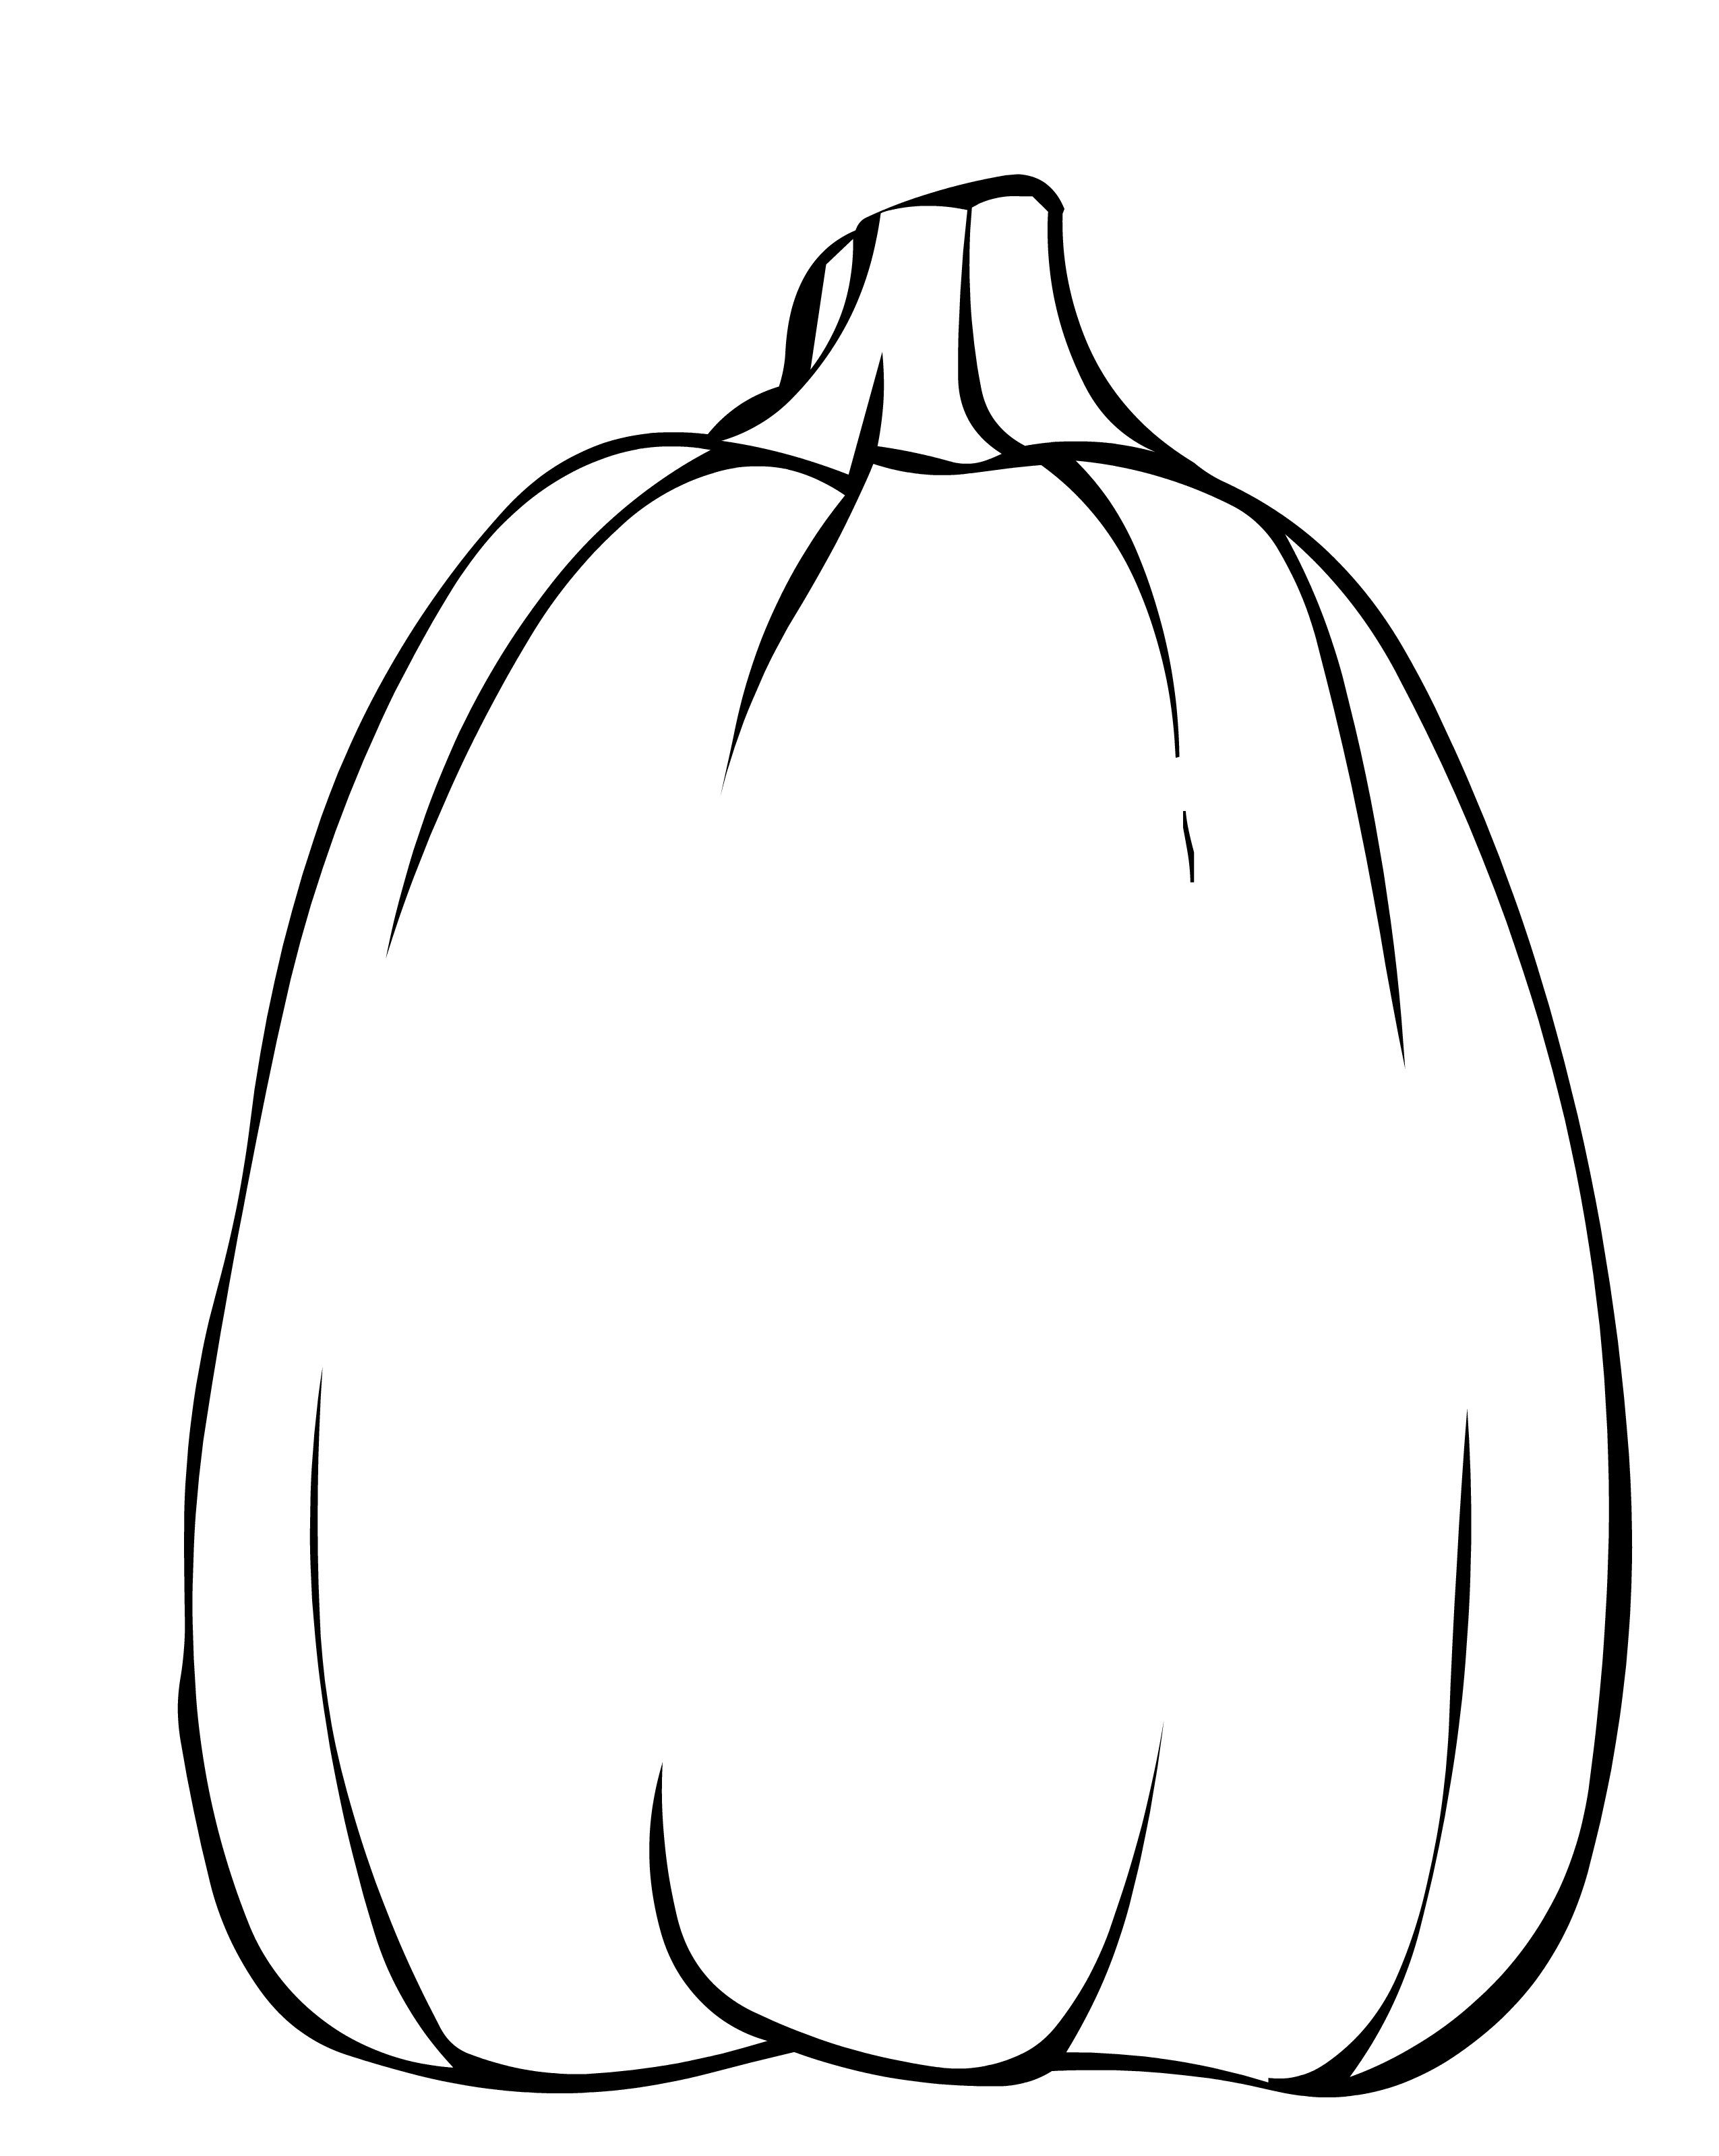 Pumpkin Outline Printable Coloring